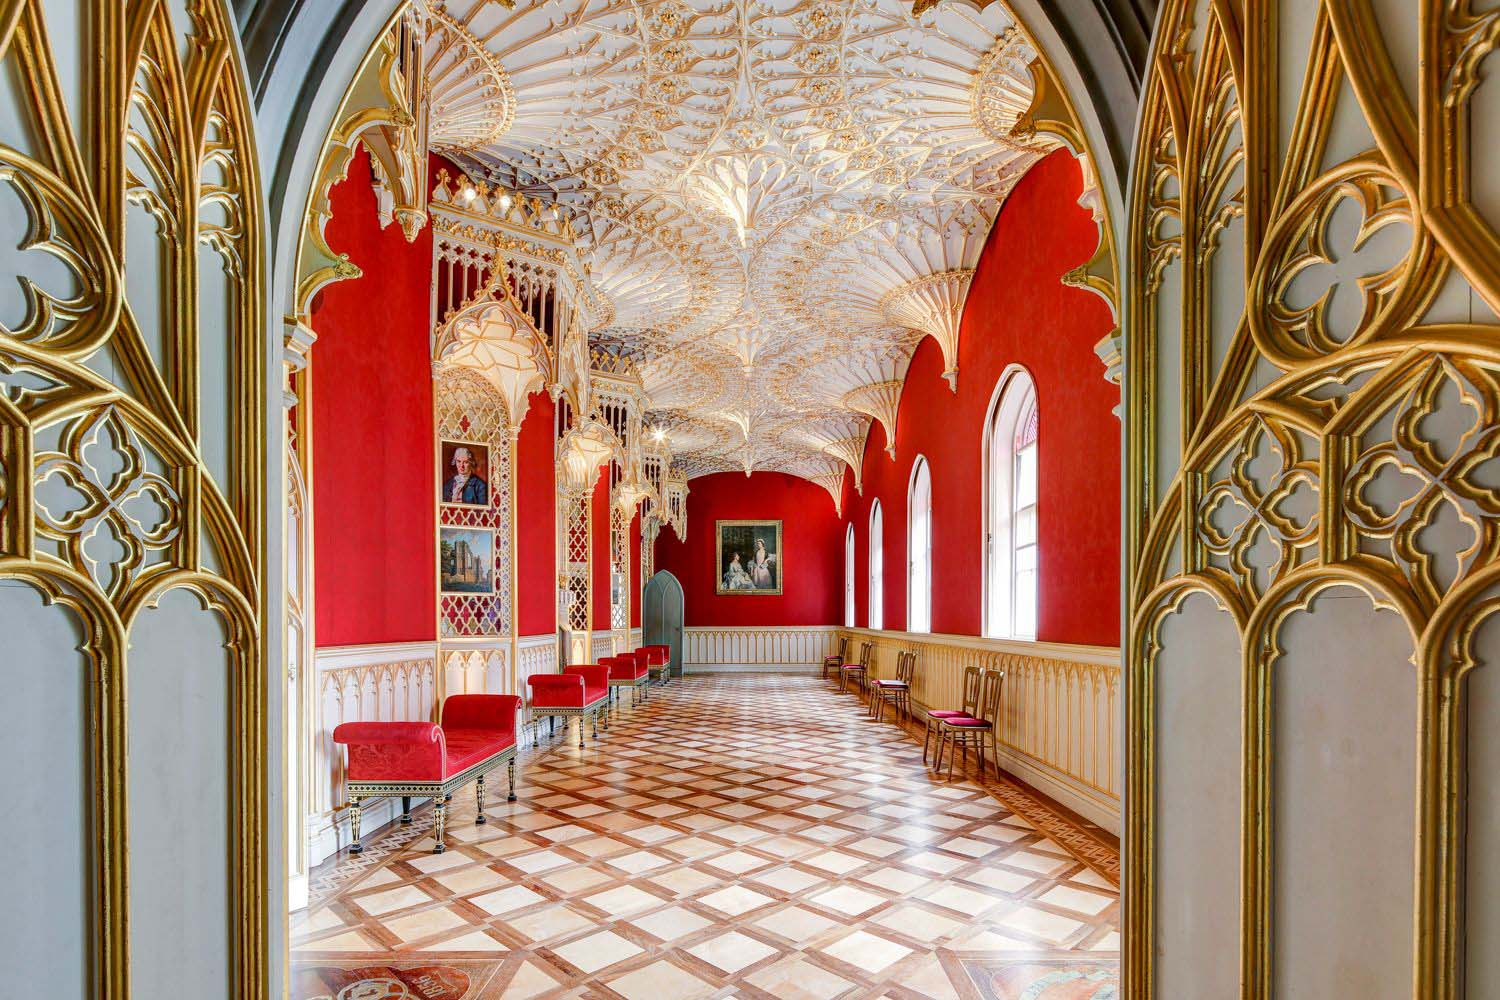 photo of a long rococo room with gilded ceiling, red walls and gothic window arches